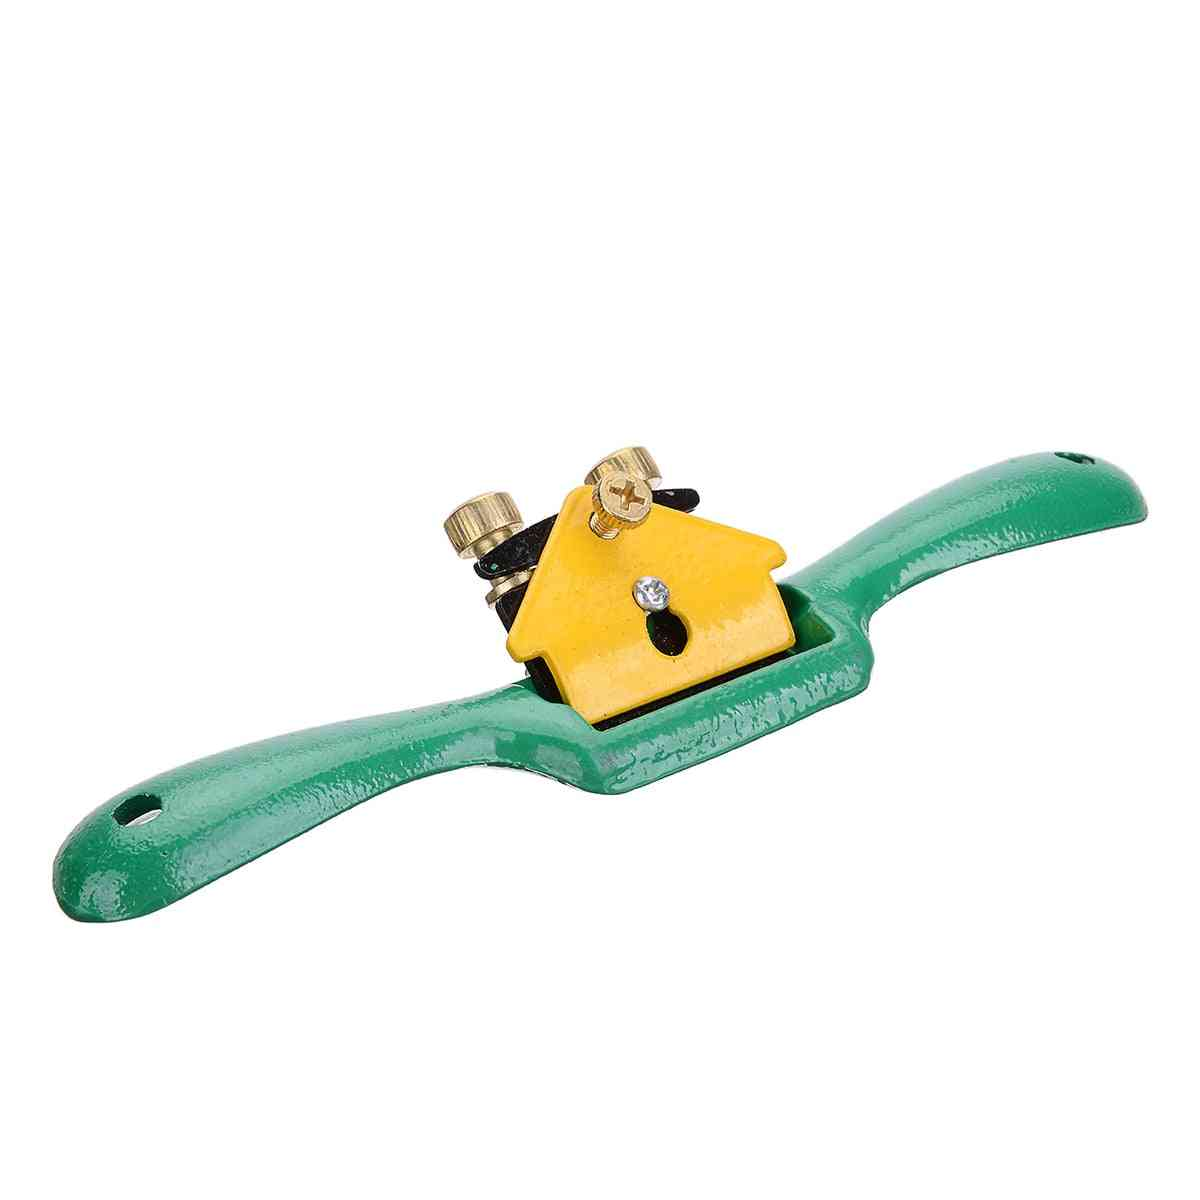 Iron Spoke Shave Plane Metal Cutting Edge Wood Shaping For Woodworking Machinery